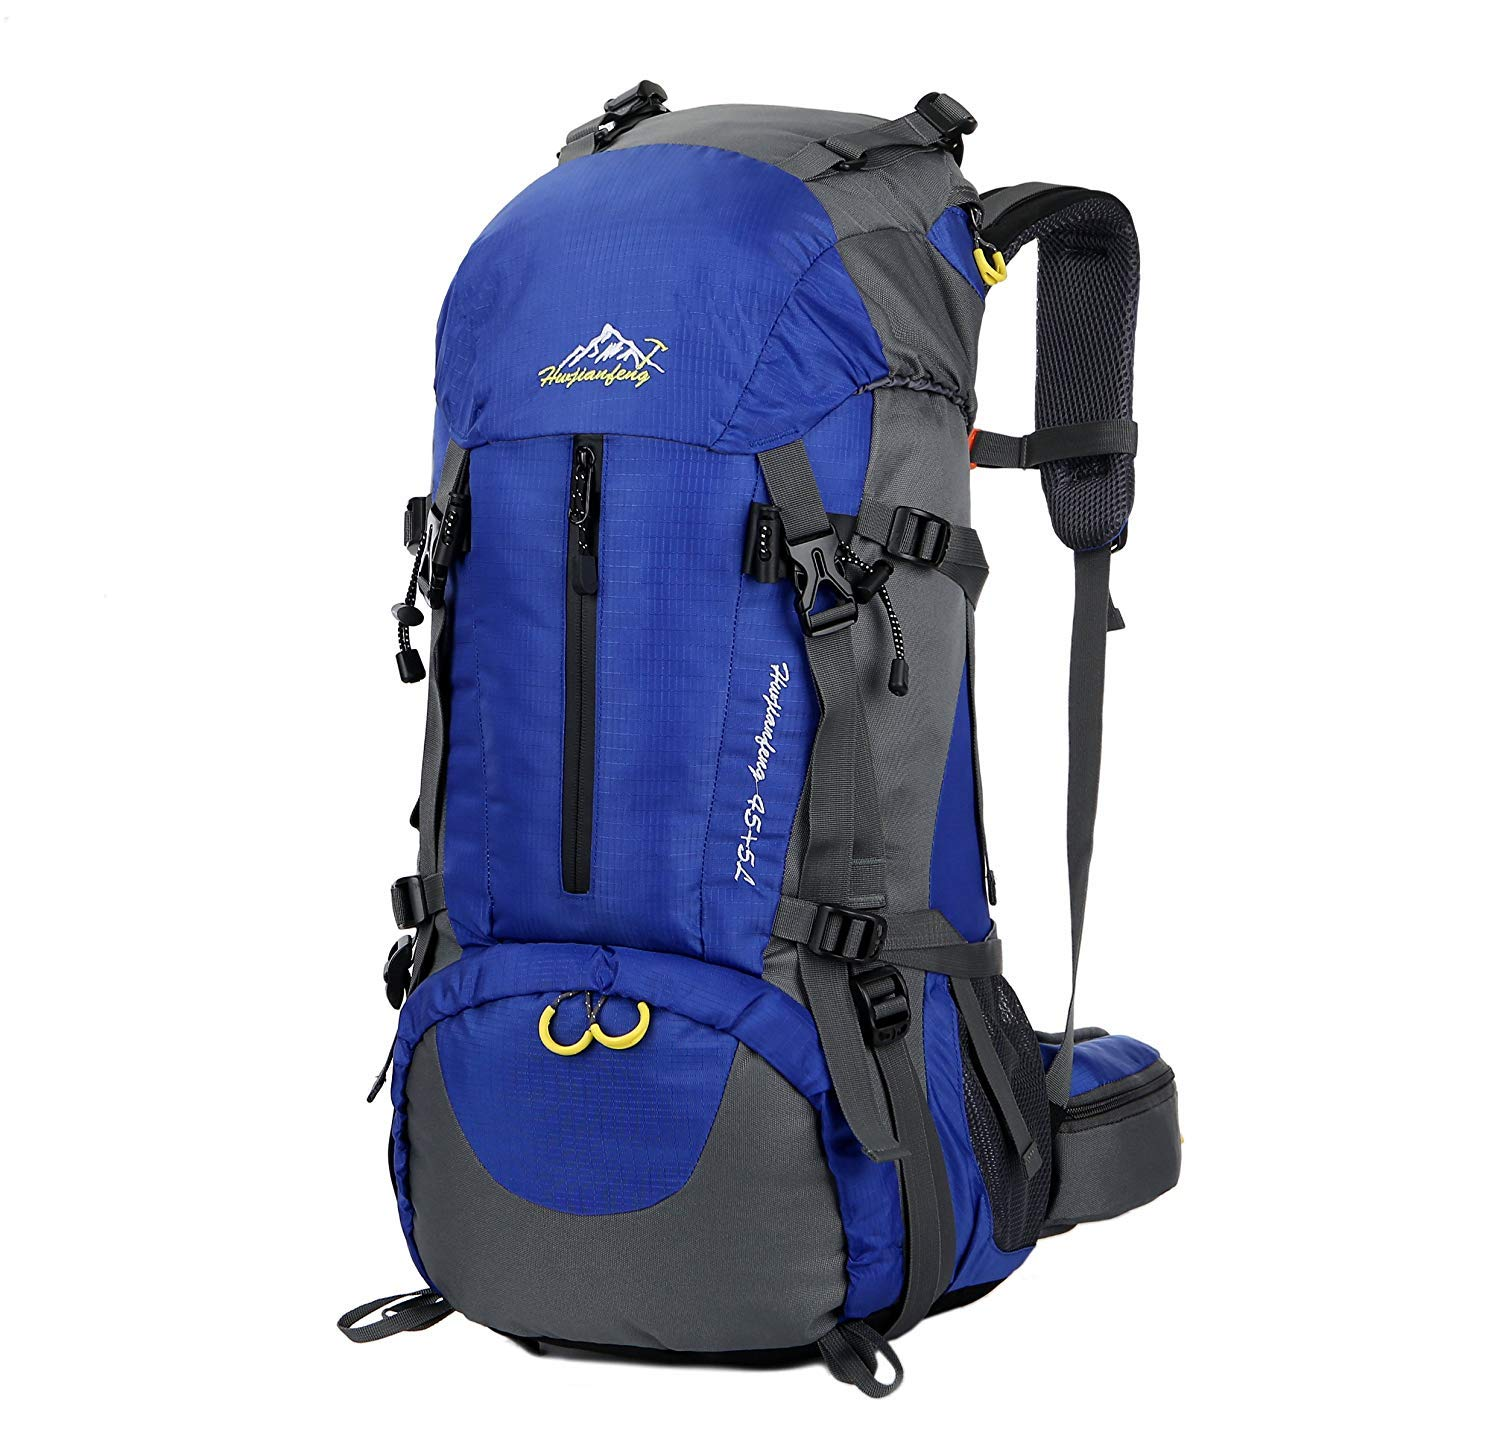 Esup Hiking Backpack, 50L Mountaineering Backpack with 45L 5L Rain Cover